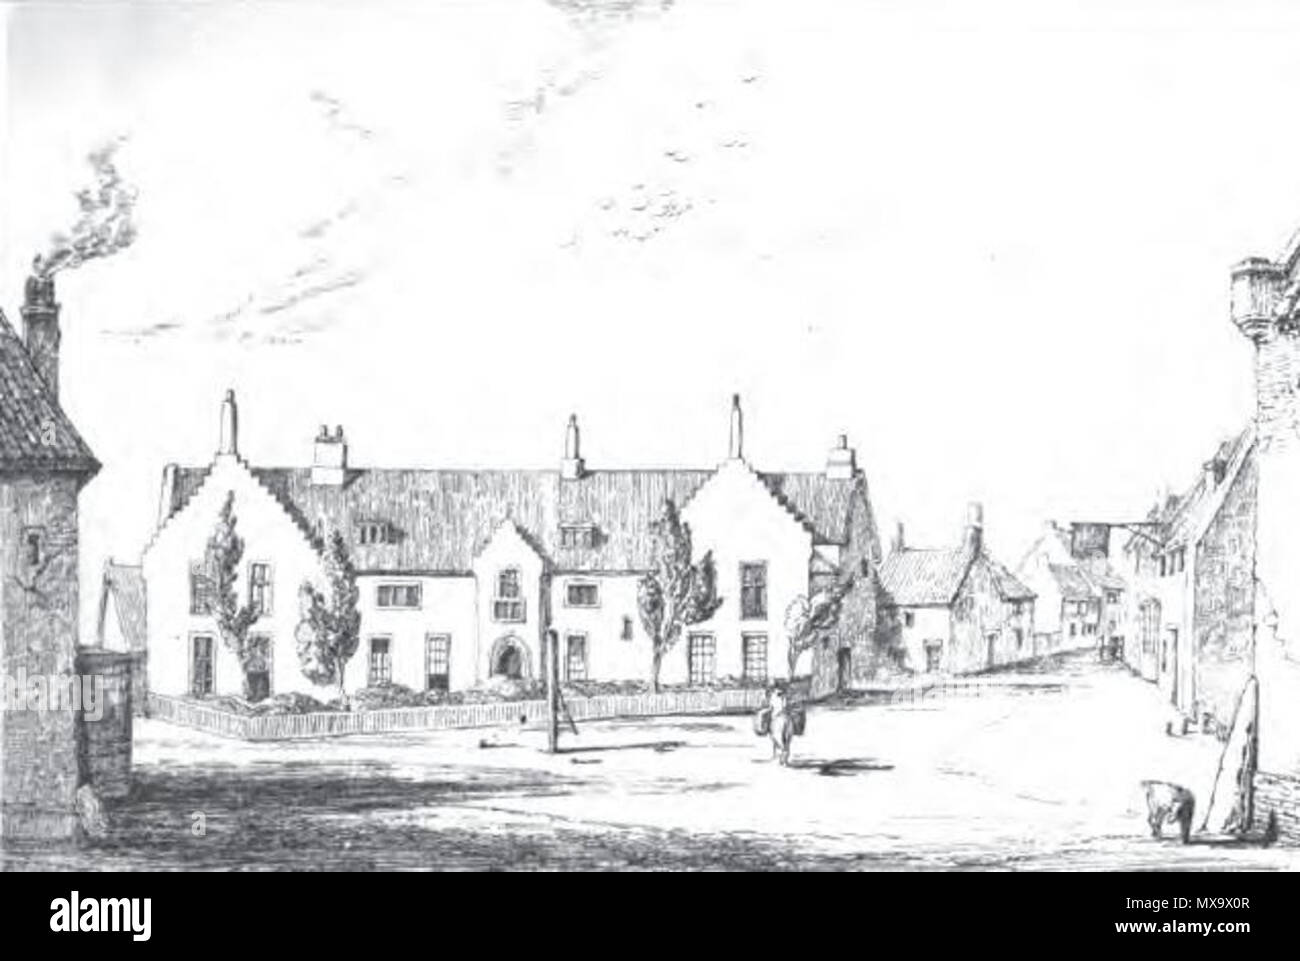 . English: Illustration of Gresham's School, Holt, from John William Burgon's The Life and Times of Sir Thomas Gresham (1839) 'from a sketch made on the spot in 1838'. 1839 engraving from a sketch dated 1838. Unknown 255 Gresham's School, 1838 - Stock Image